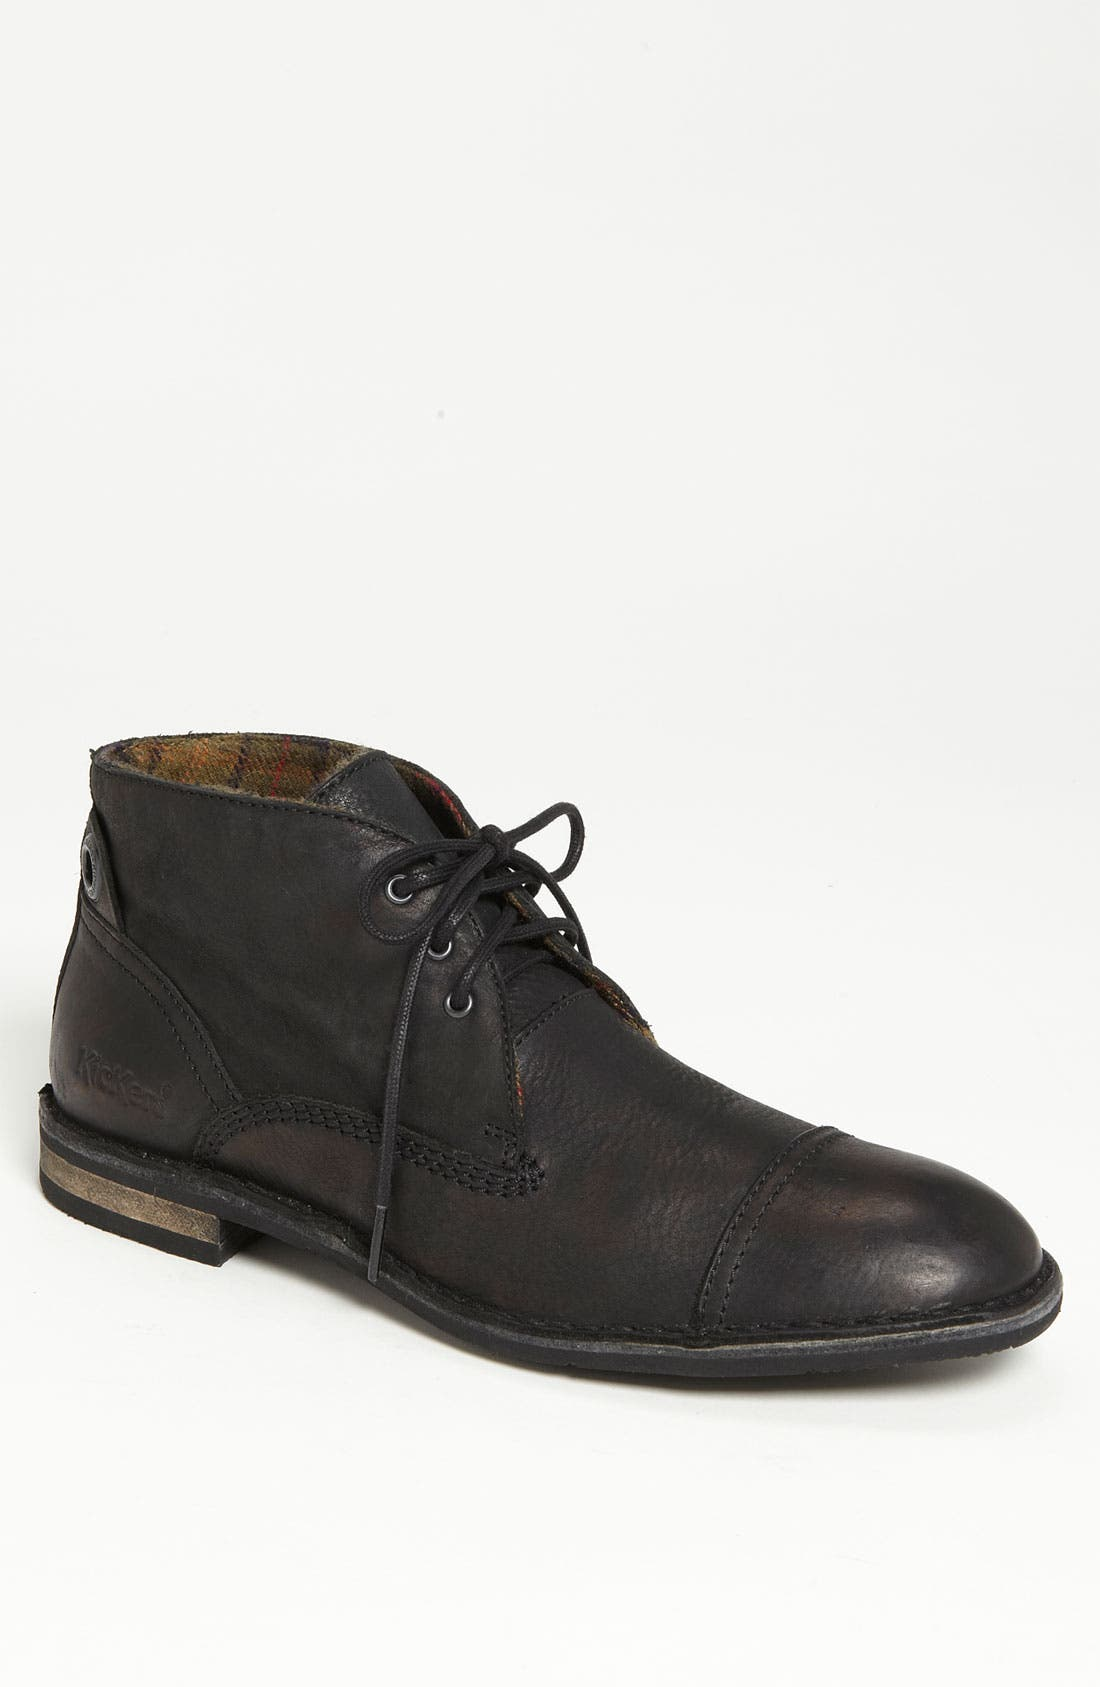 Alternate Image 1 Selected - Kickers 'Edgo' Chukka Boot (Online Only)